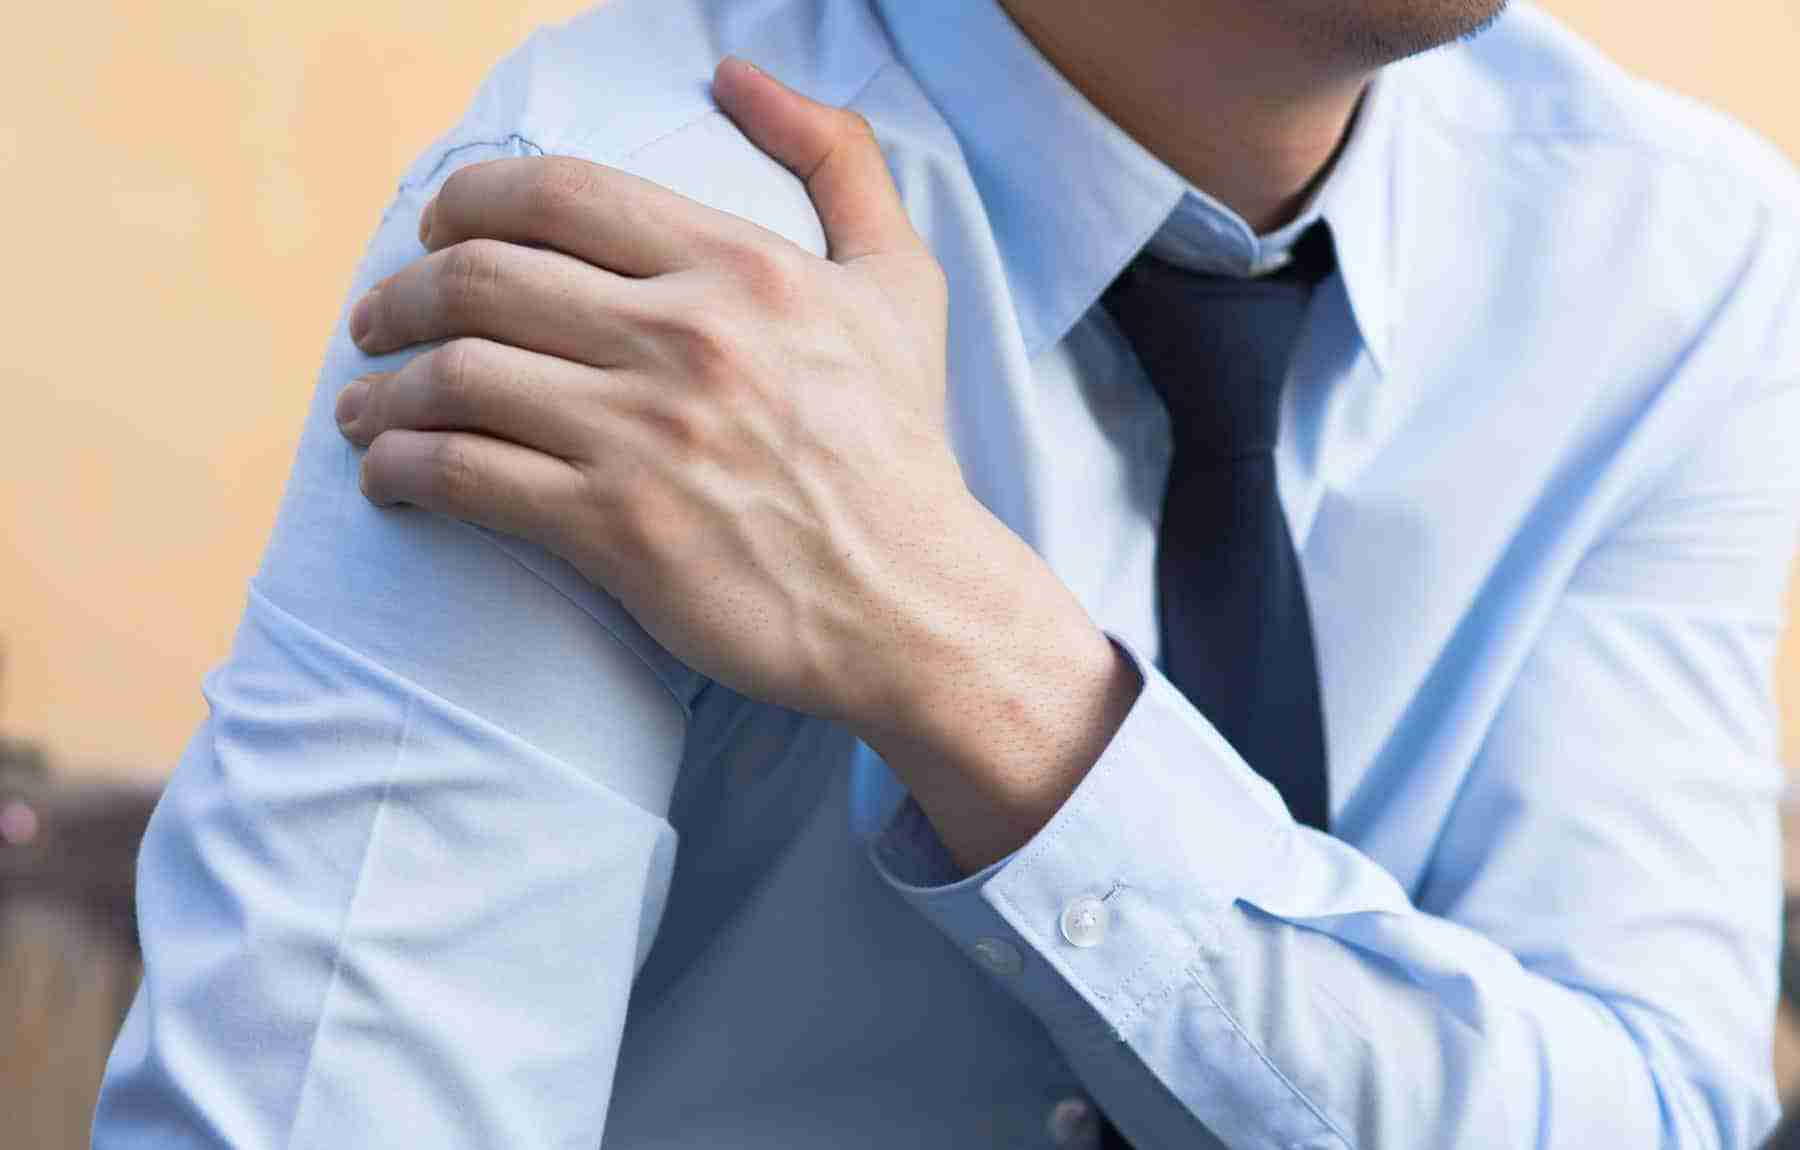 How to Determine the Cause of Anterior Shoulder Pain